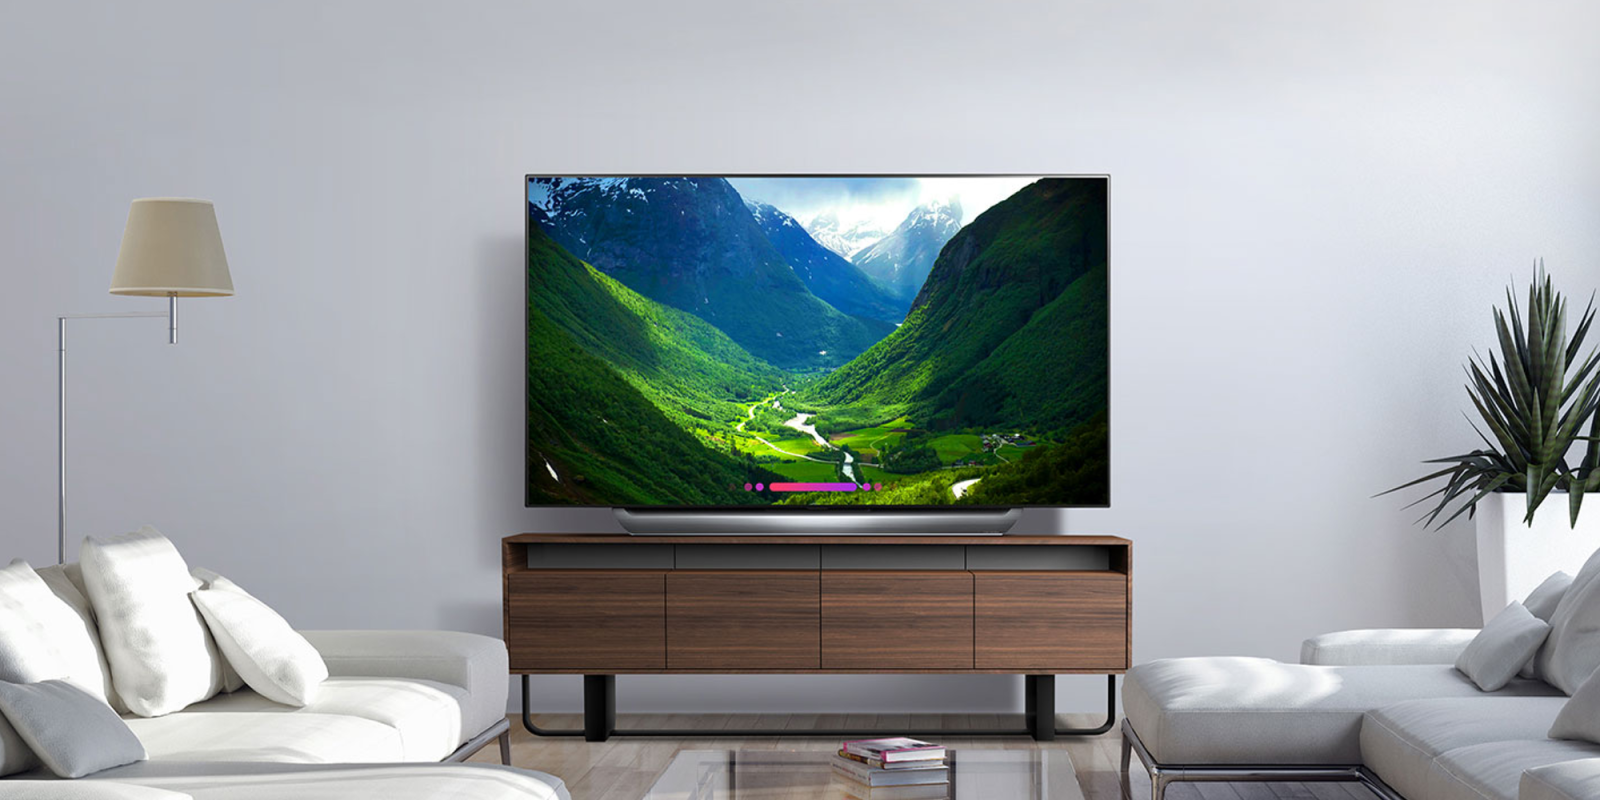 What to look for when shopping for home theater gear: TV Panel + Resolution